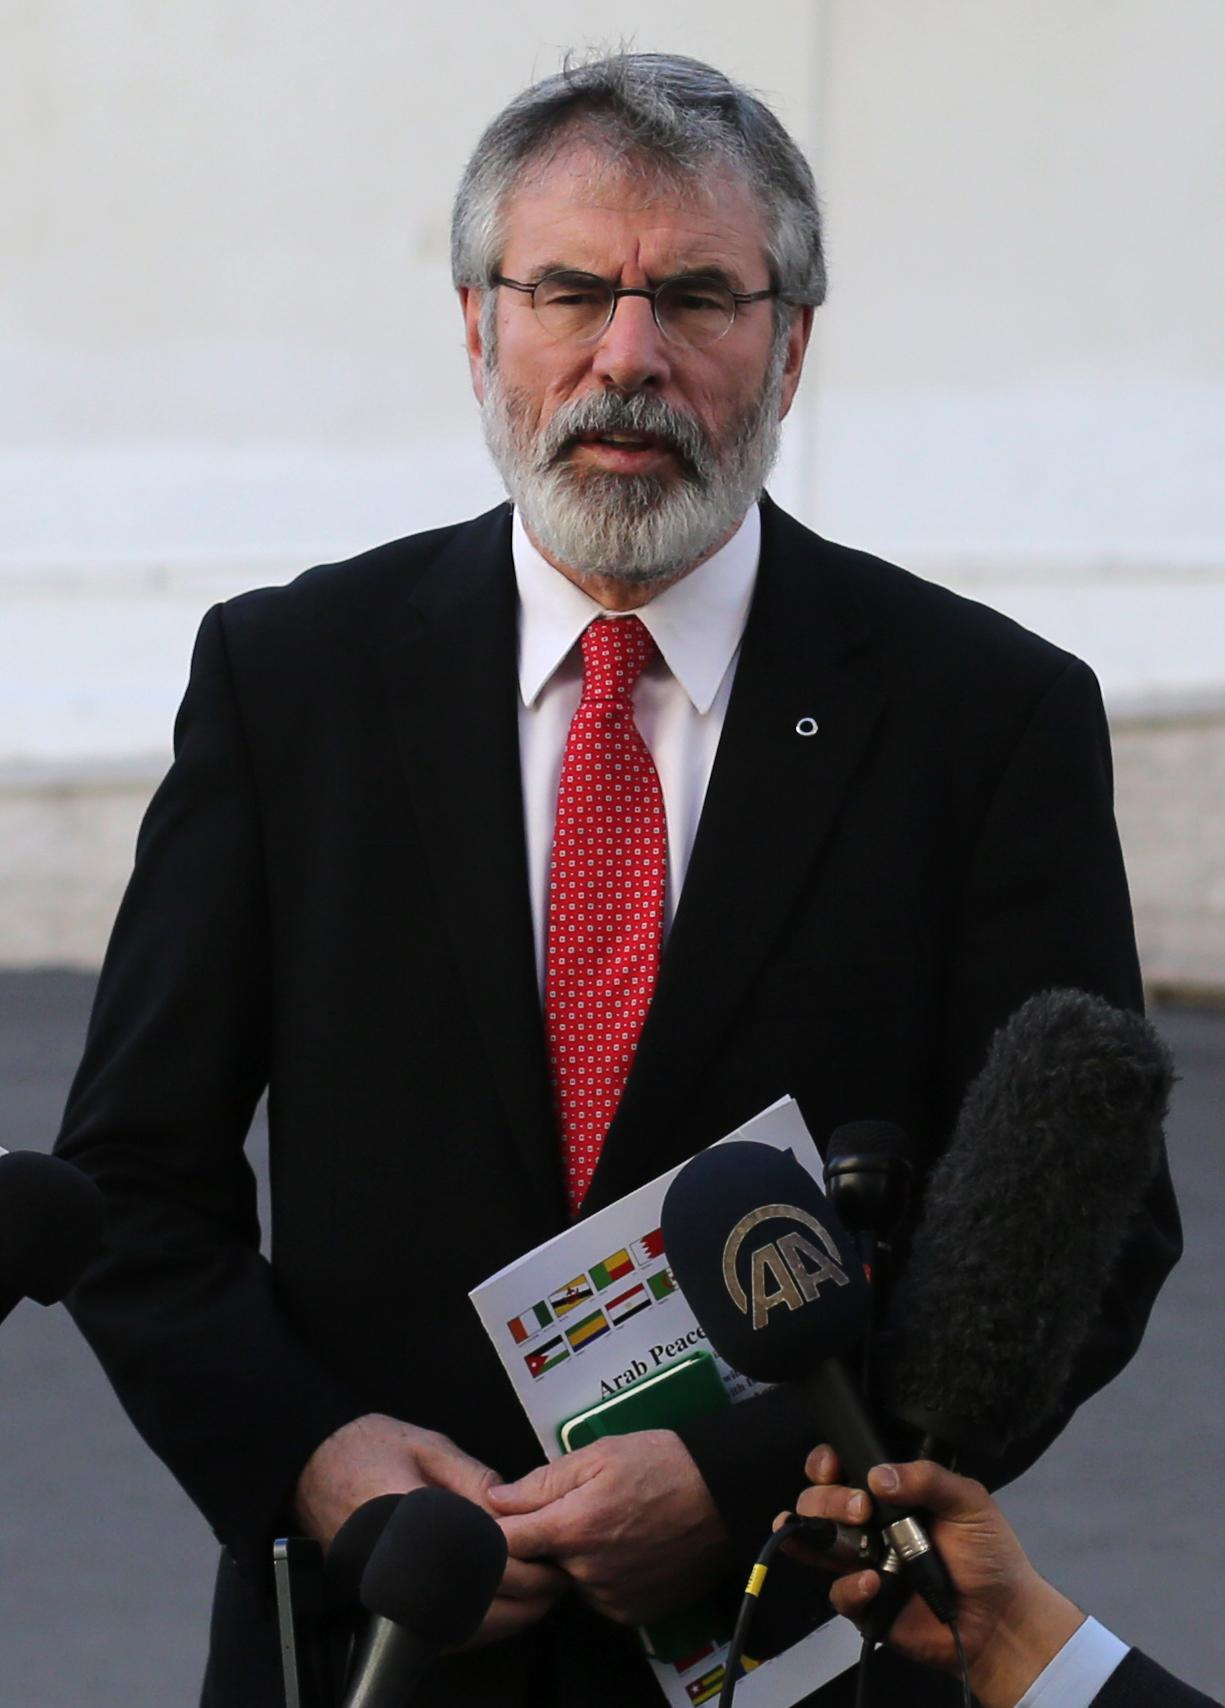 Irish republican politician and president of the Sinn Féin political party Gerry Adams talks to the press on December 4, 2014 during his visit to the West Bank city of Ramallah (AFP Photo/Abbas Momani)